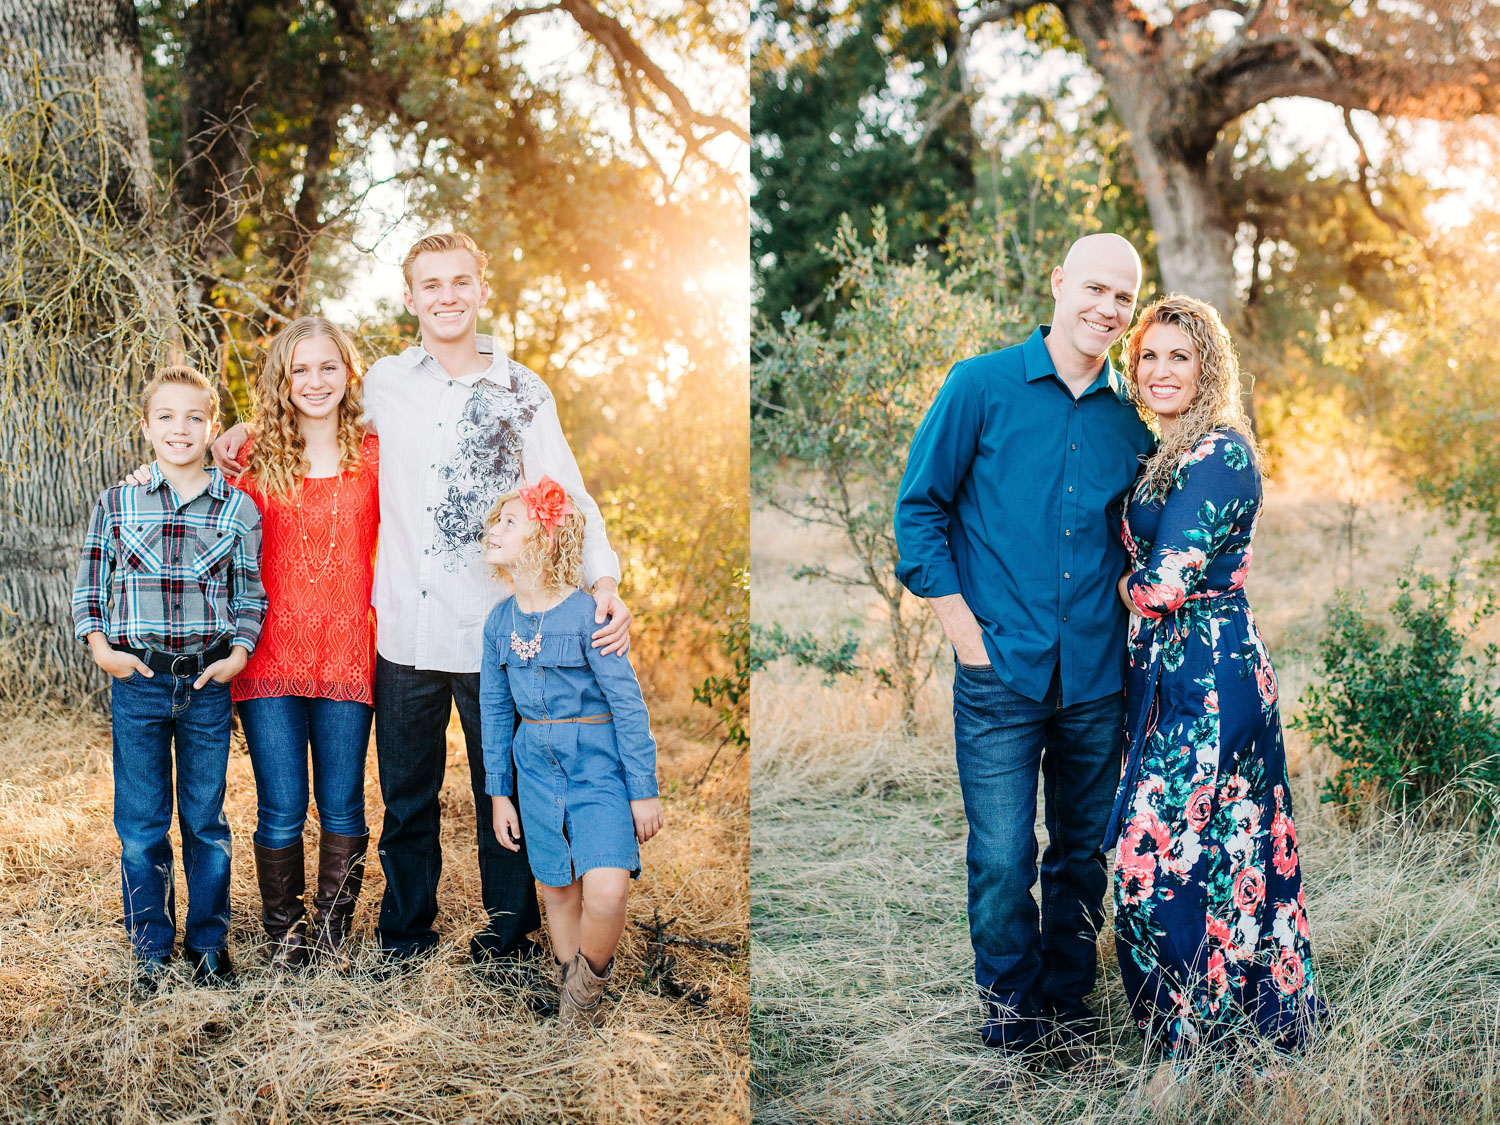 A diptych of four children and their parents from a family mini photo session with Amy Wright Photography in Roseville, California.